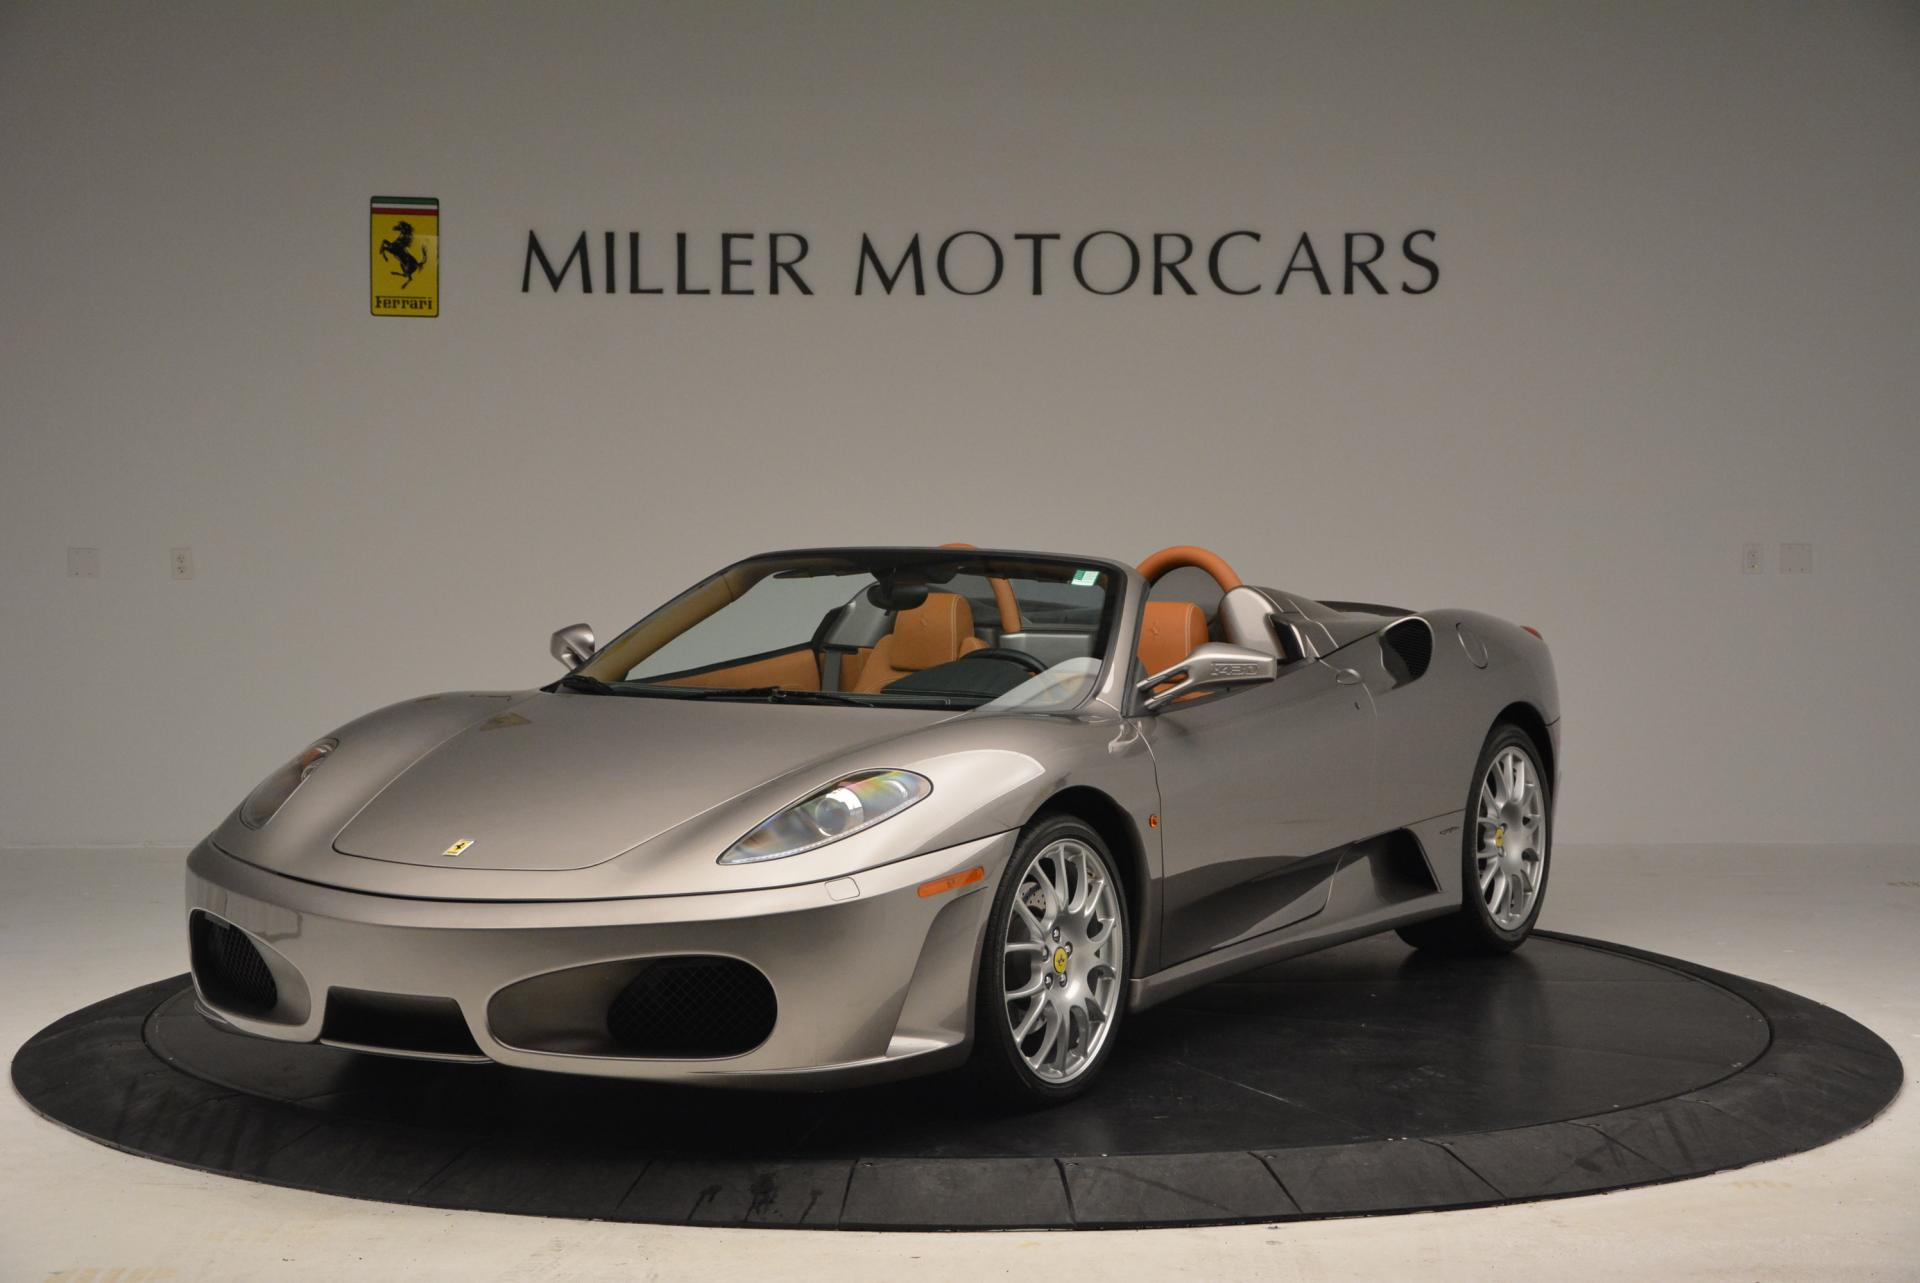 Used 2005 Ferrari F430 Spider 6-Speed Manual for sale Sold at Alfa Romeo of Greenwich in Greenwich CT 06830 1